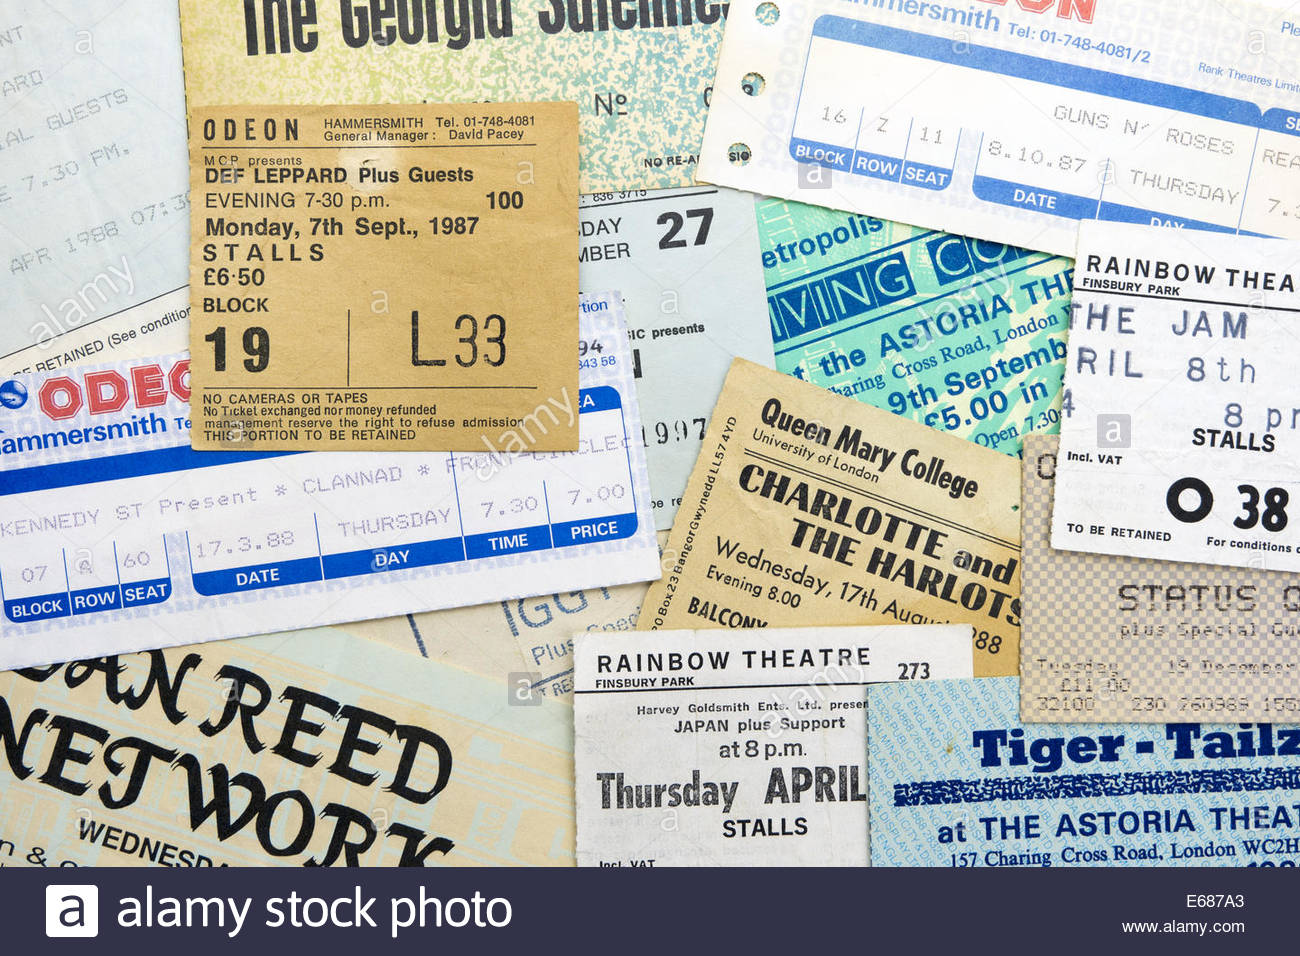 Concert Ticket Stubs Stockfotos & Concert Ticket Stubs Bilder - Alamy